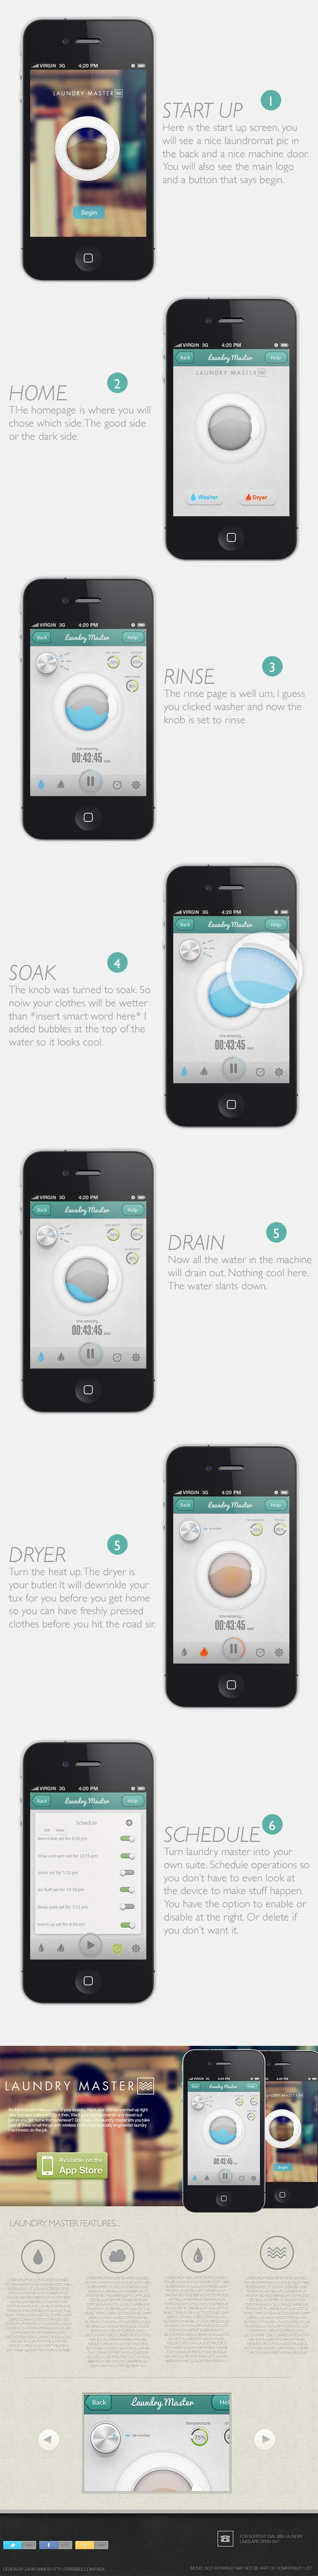 Laundry Master App - iOS by Zahir Ramos, via Behance